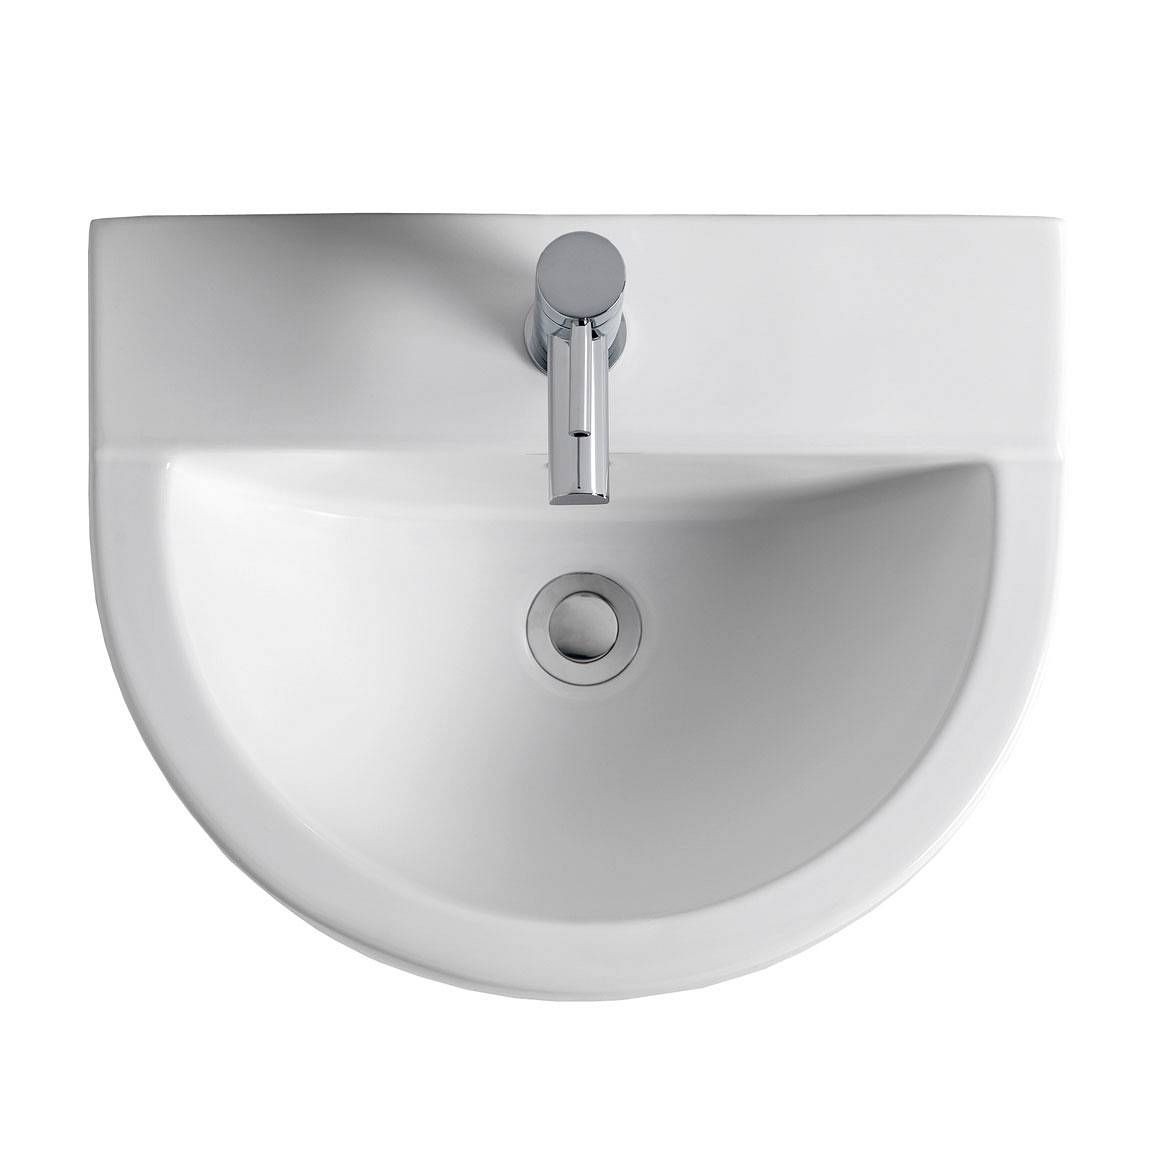 The Bath Co Camberley 2 Tap Hole Full Pedestal Basin